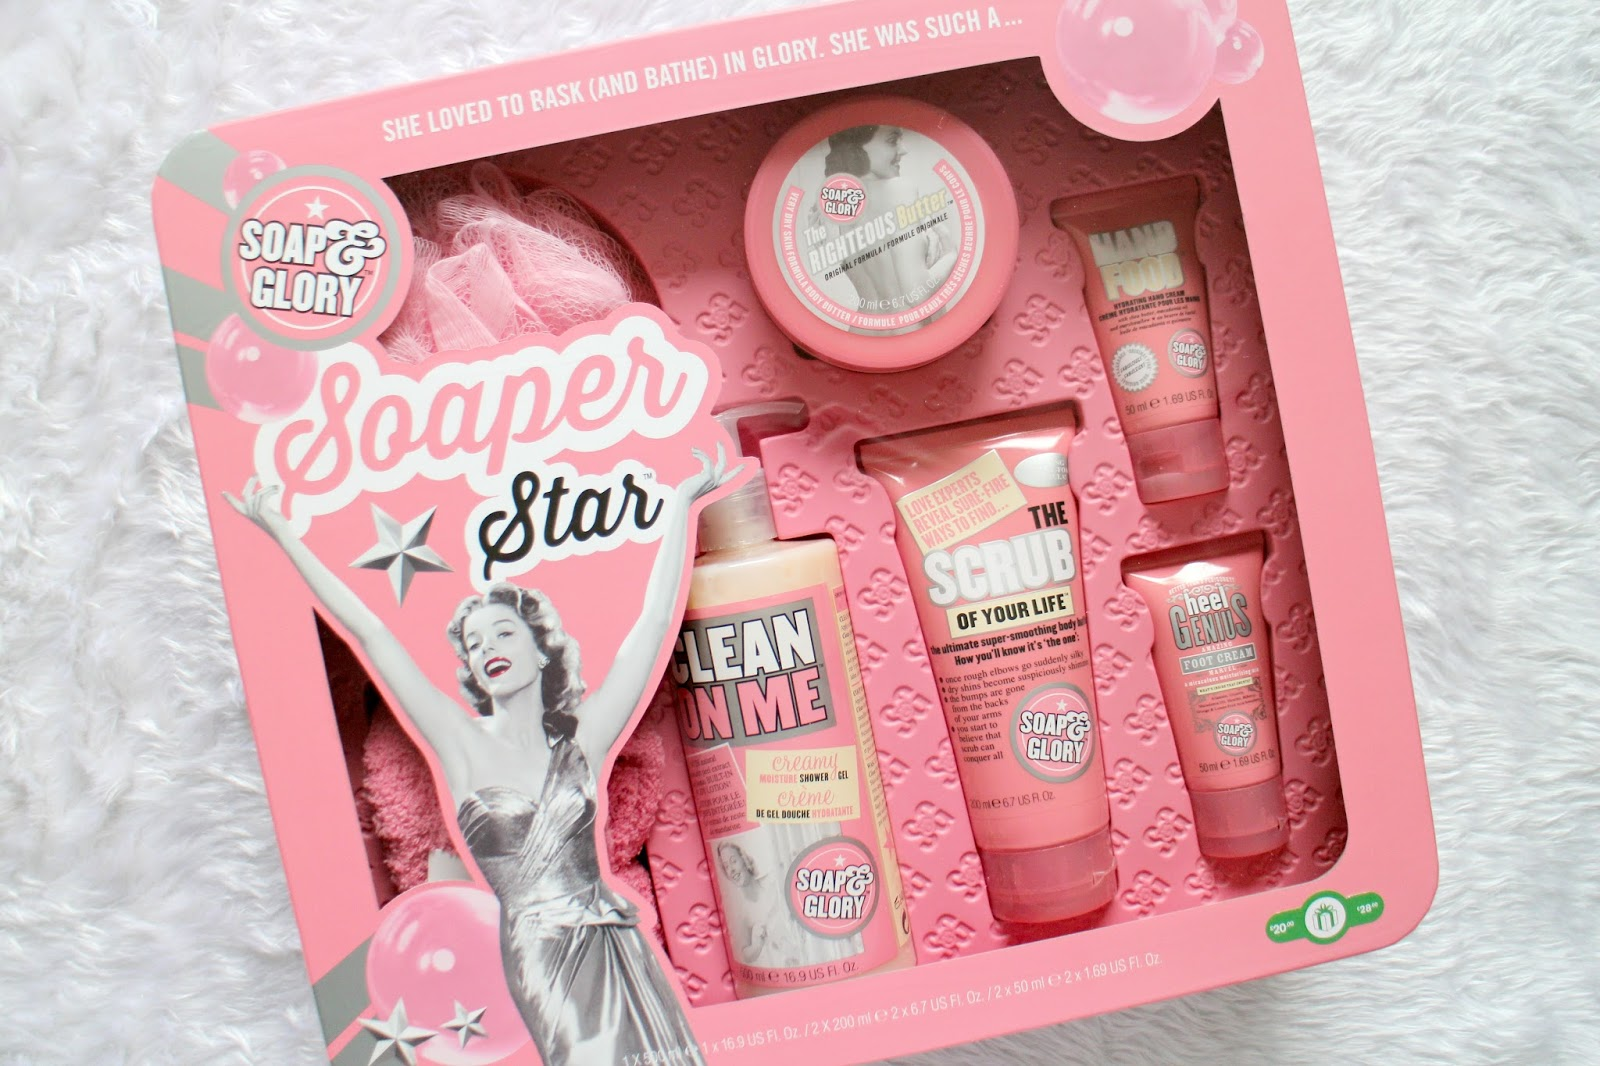 Soap & Glory Boots Sale